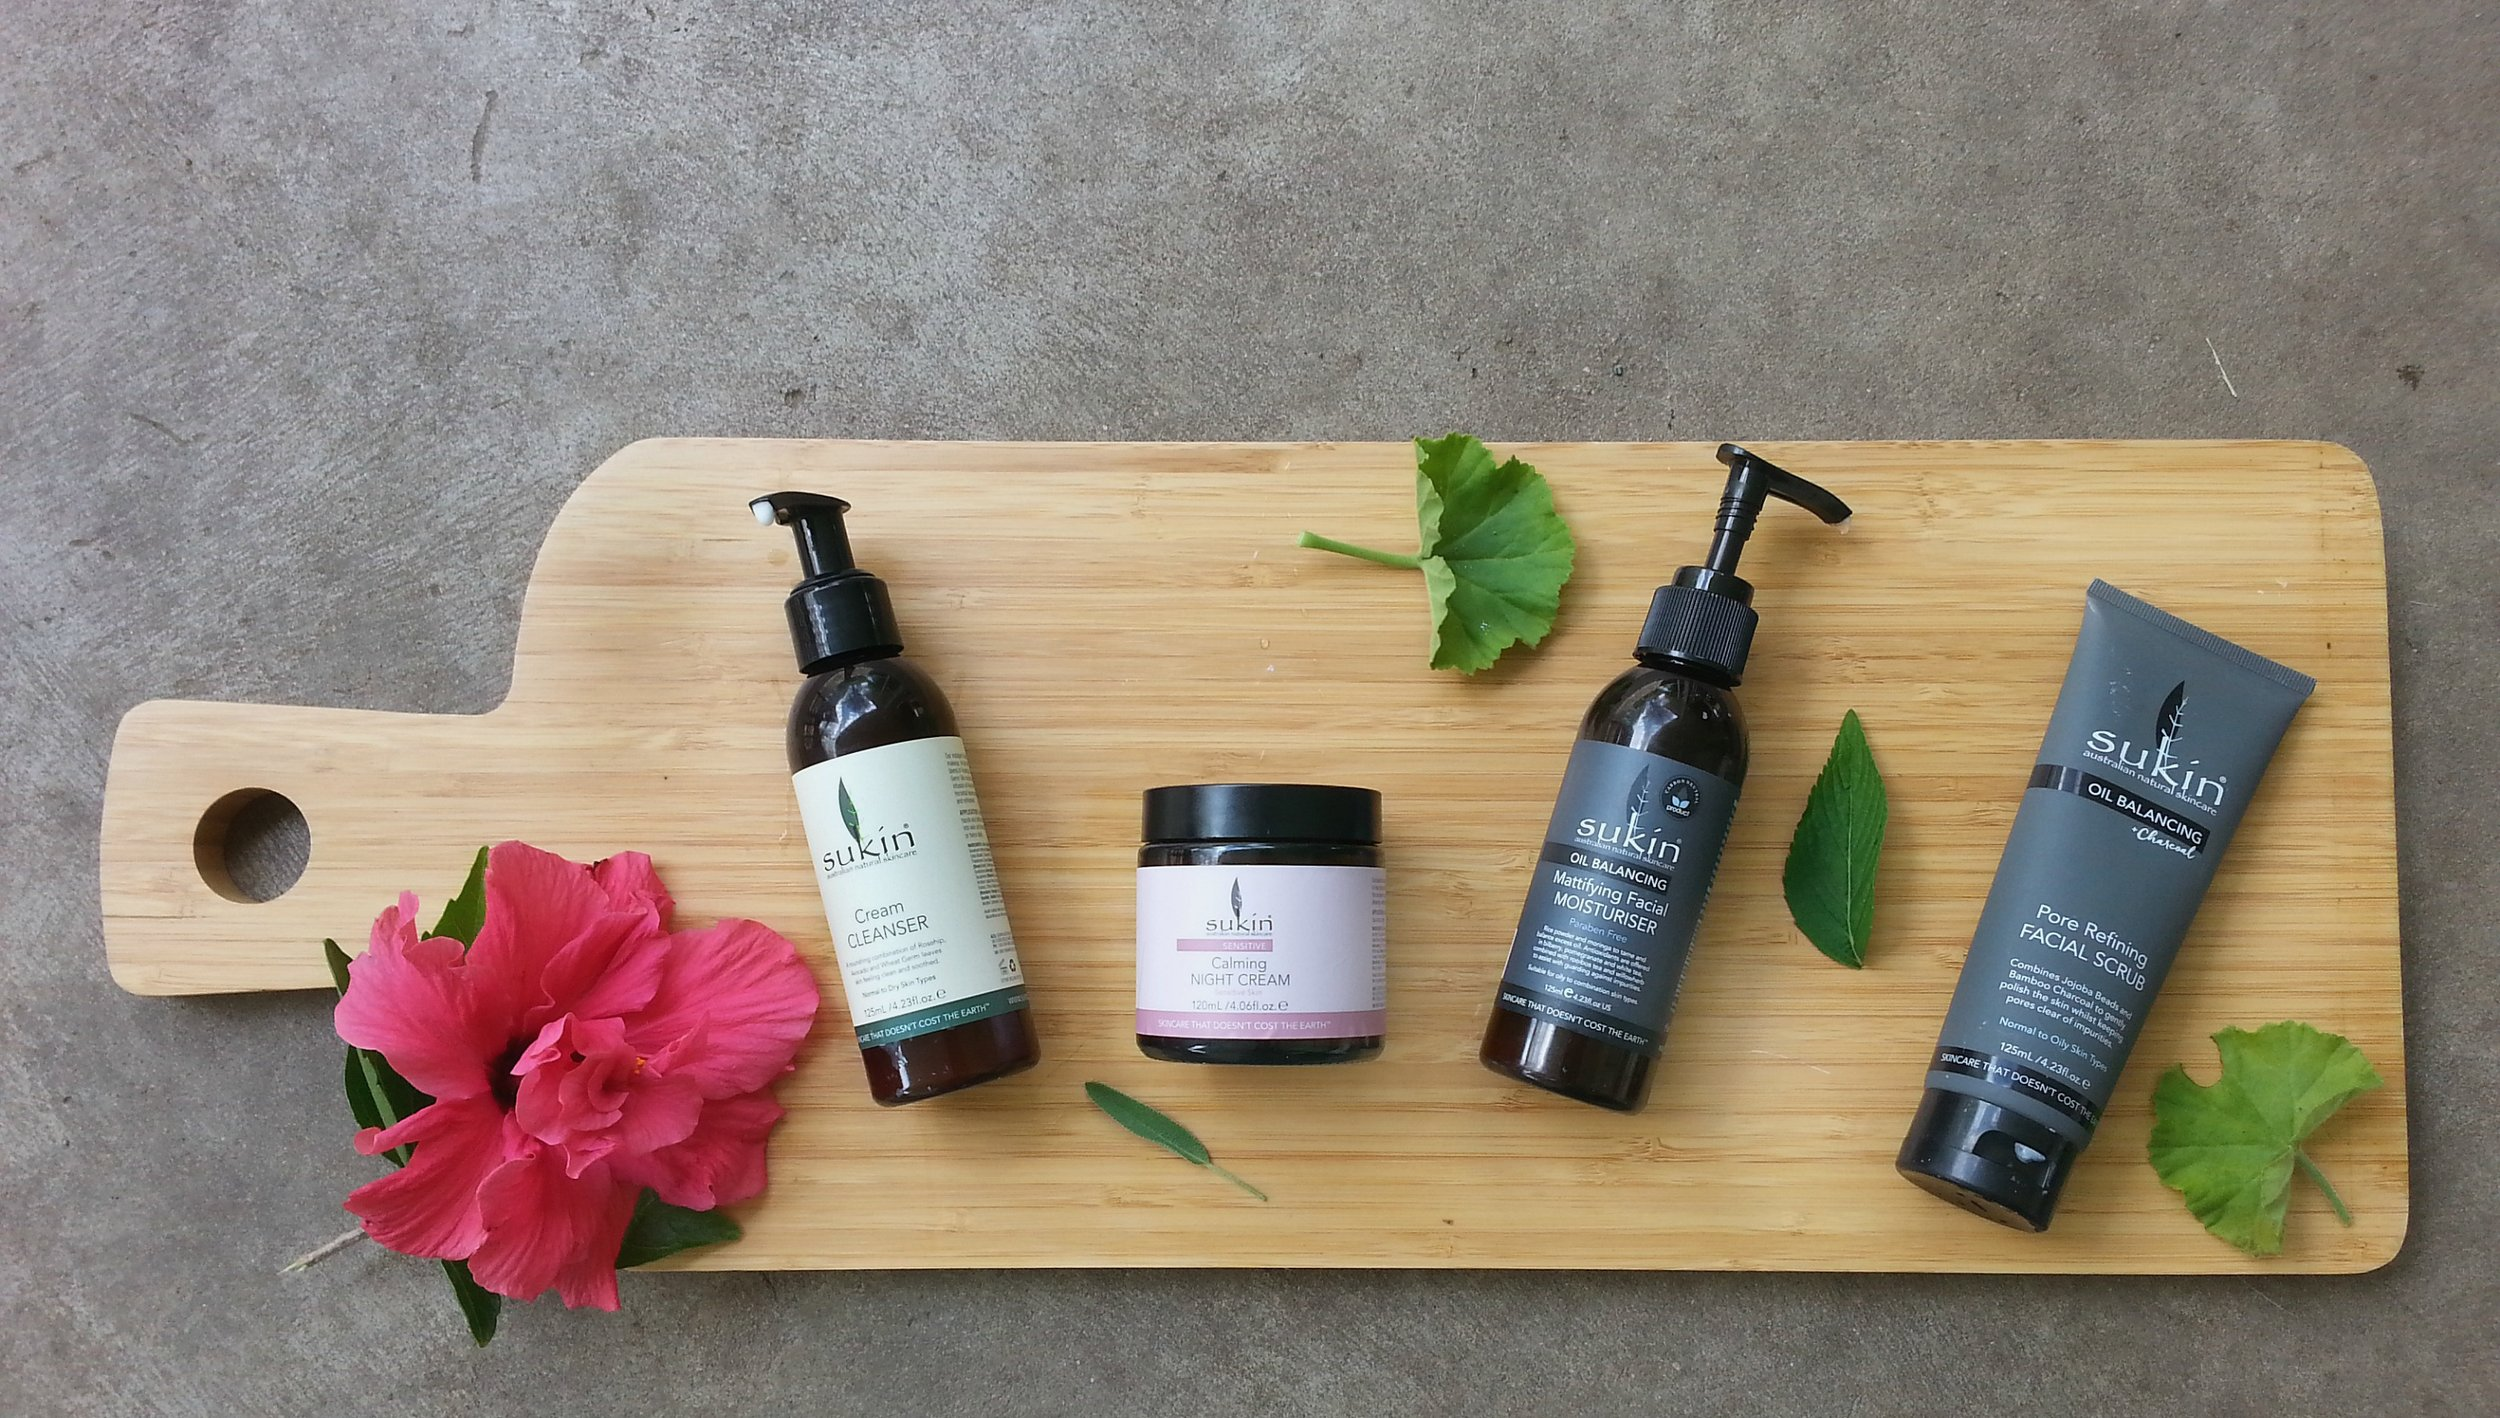 STEAL THE WAXING MOON SKINCARE ROUTINE |   Night cleanser -    Sukin Cream Cleanser    / Night moisturiser -    Sukin Calming Night Cream    / Twice weekly exfoliation -    Sukin Pore Refining Facial Scrub    / Day moisturiser -    Sukin Mattifying Facial Moisturiser